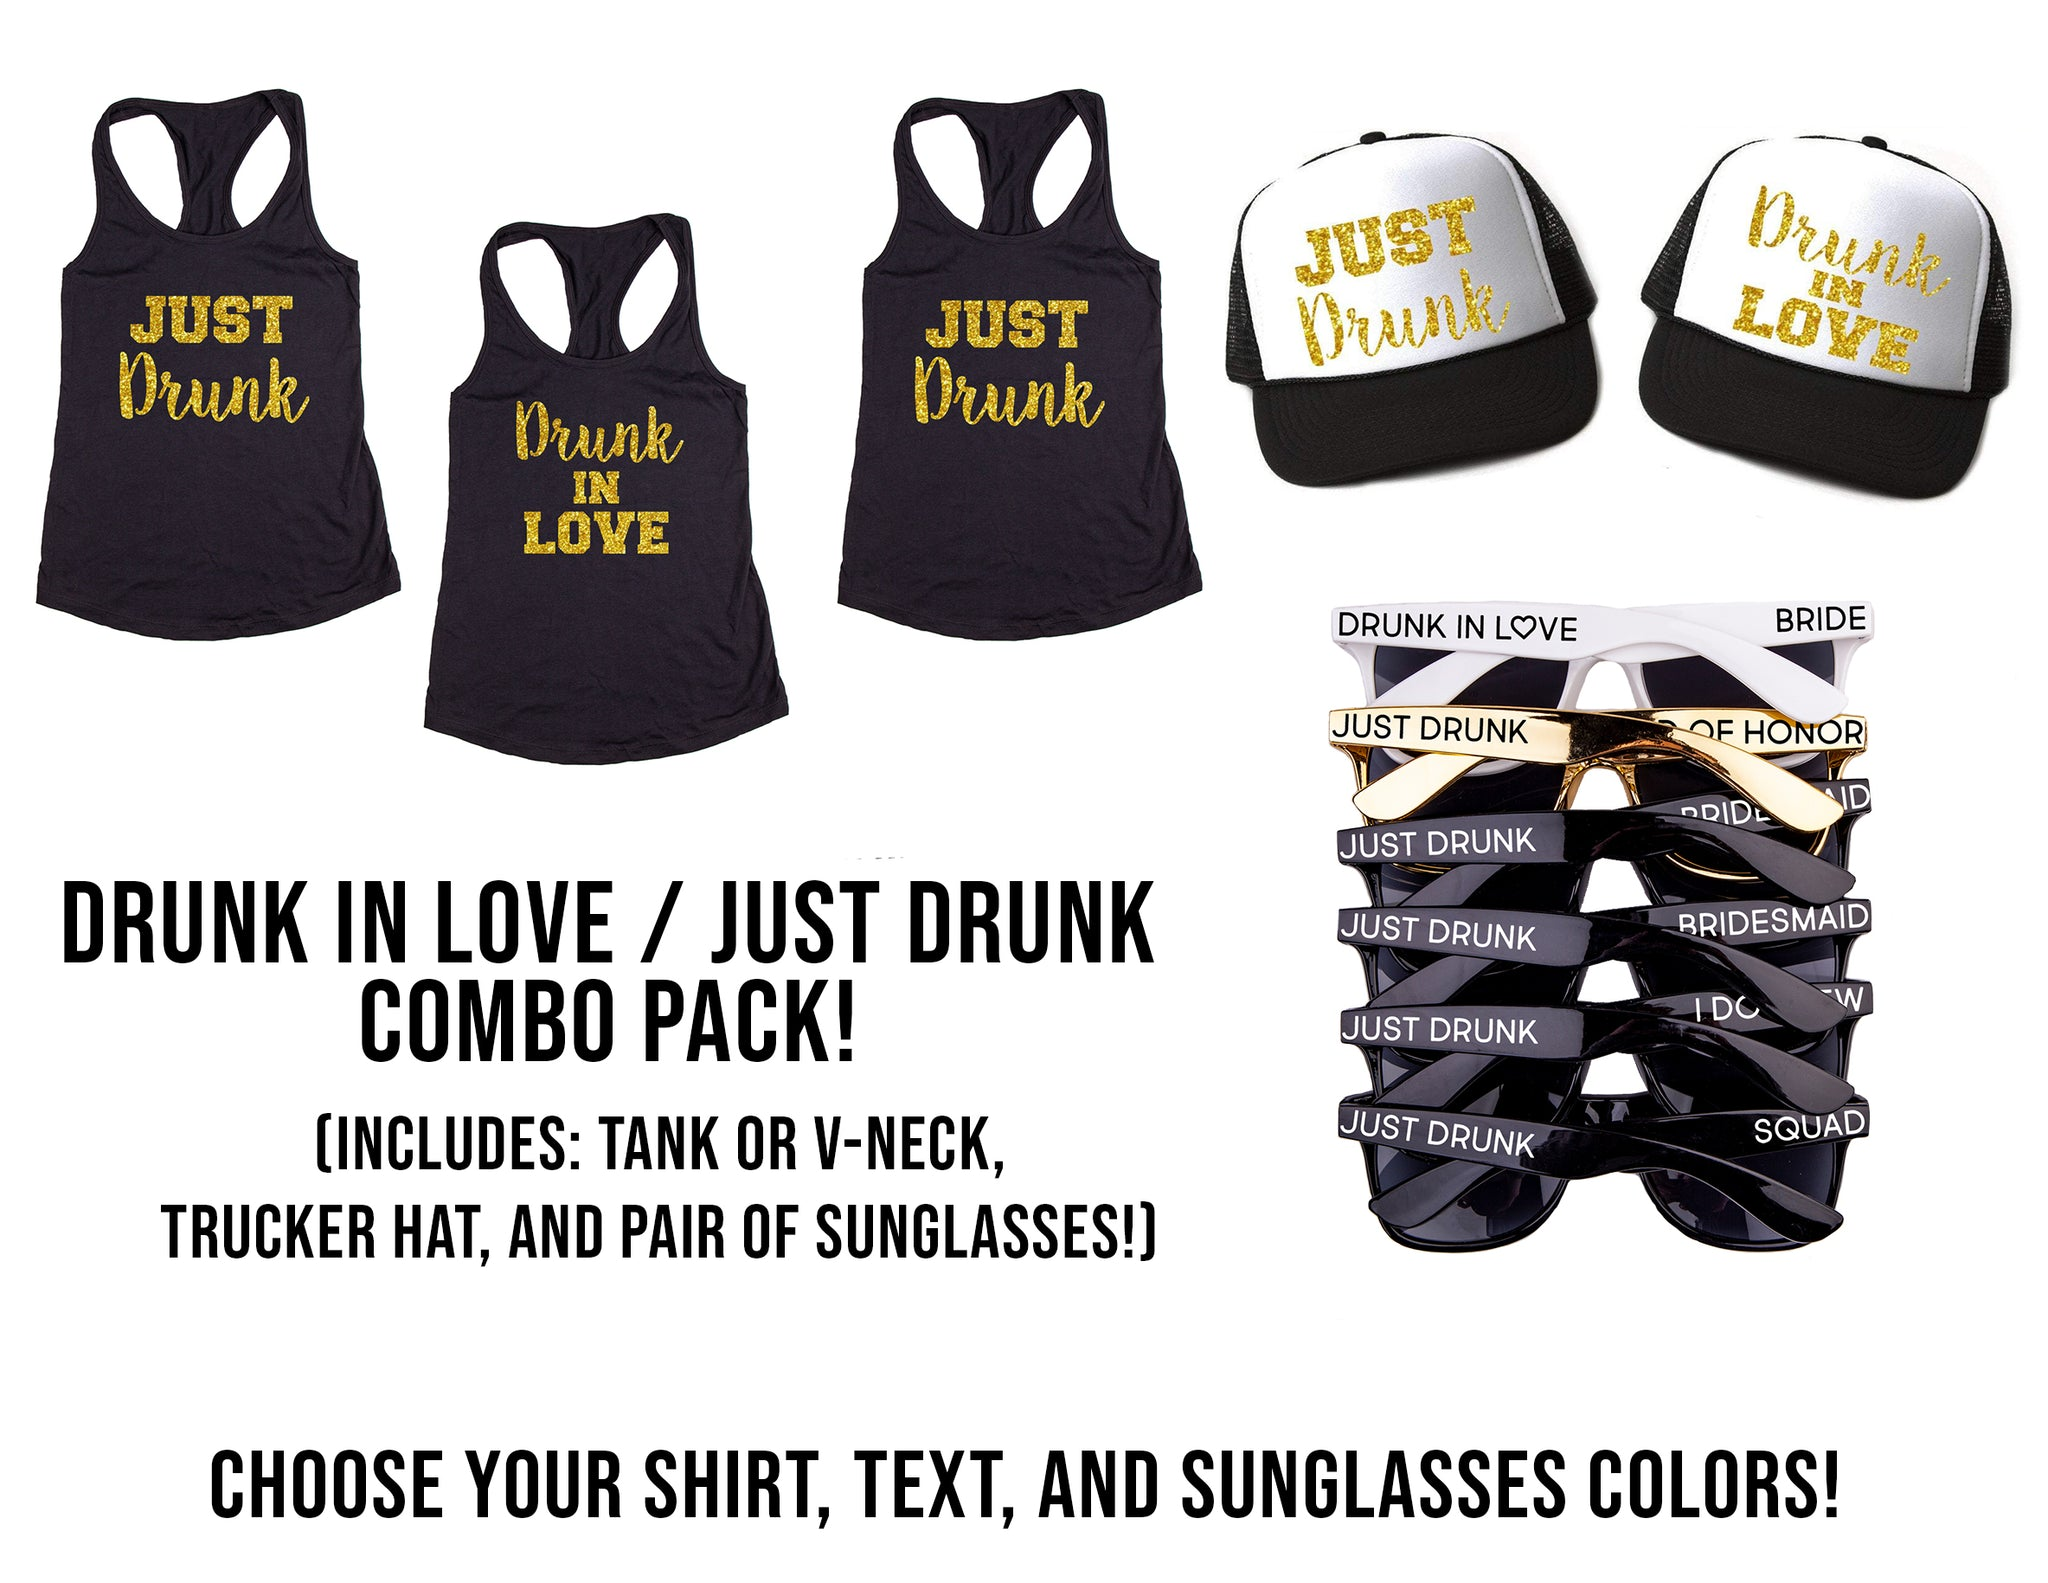 Ultimate Drunk in Love Bachelorette Party Combo Pack- Includes Shirts, Sunglasses & Trucker Hats